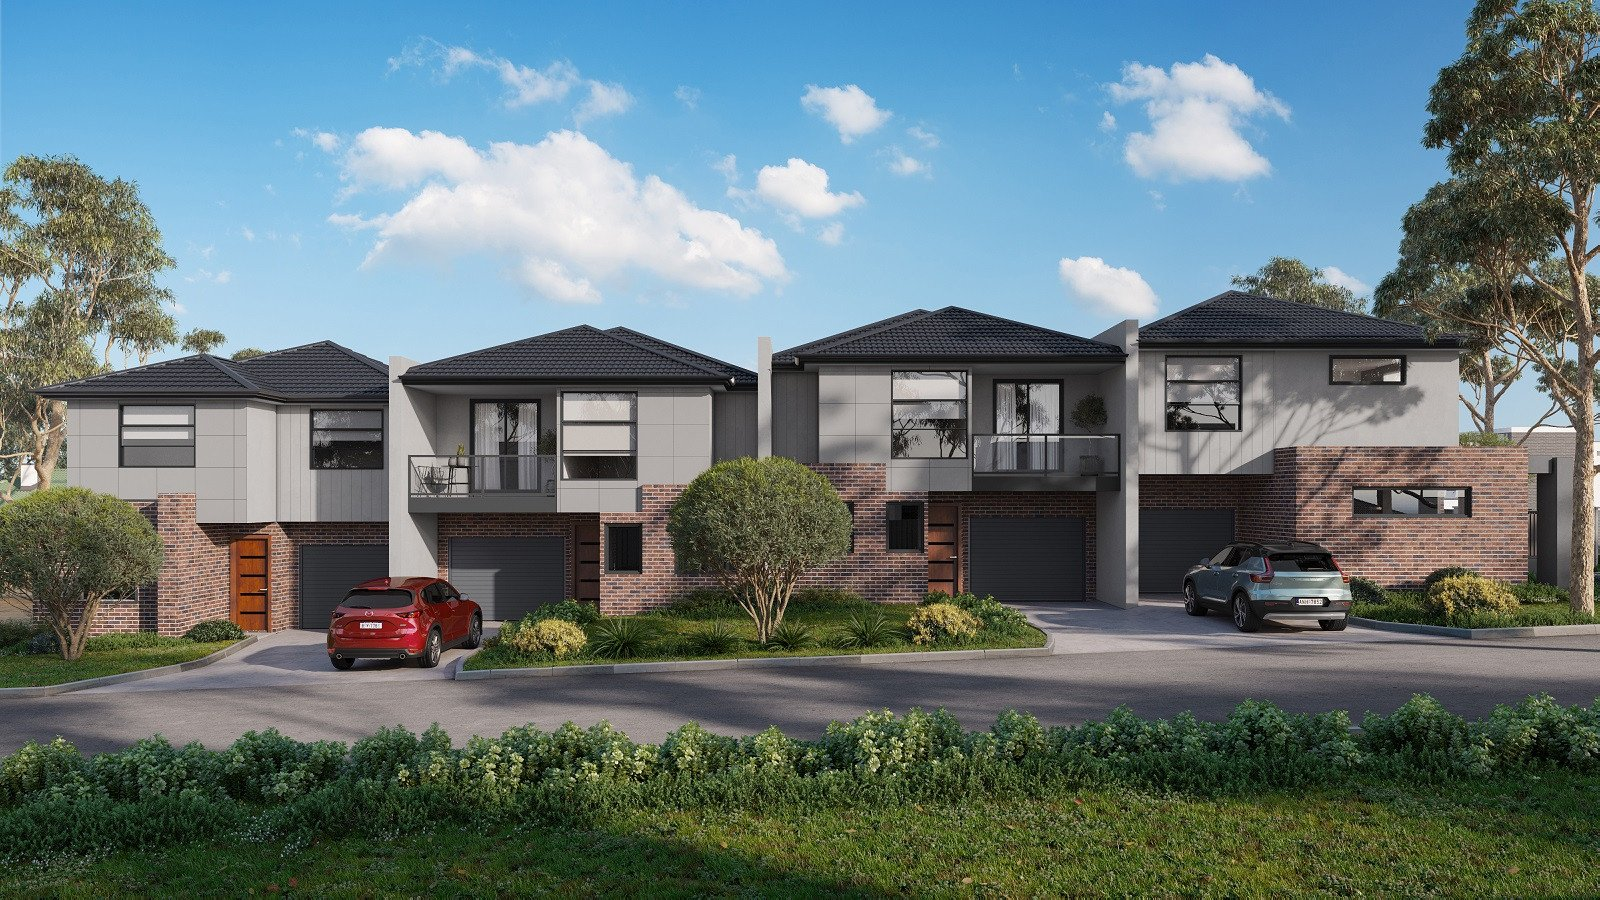 Stud Road Townhomes-image-5